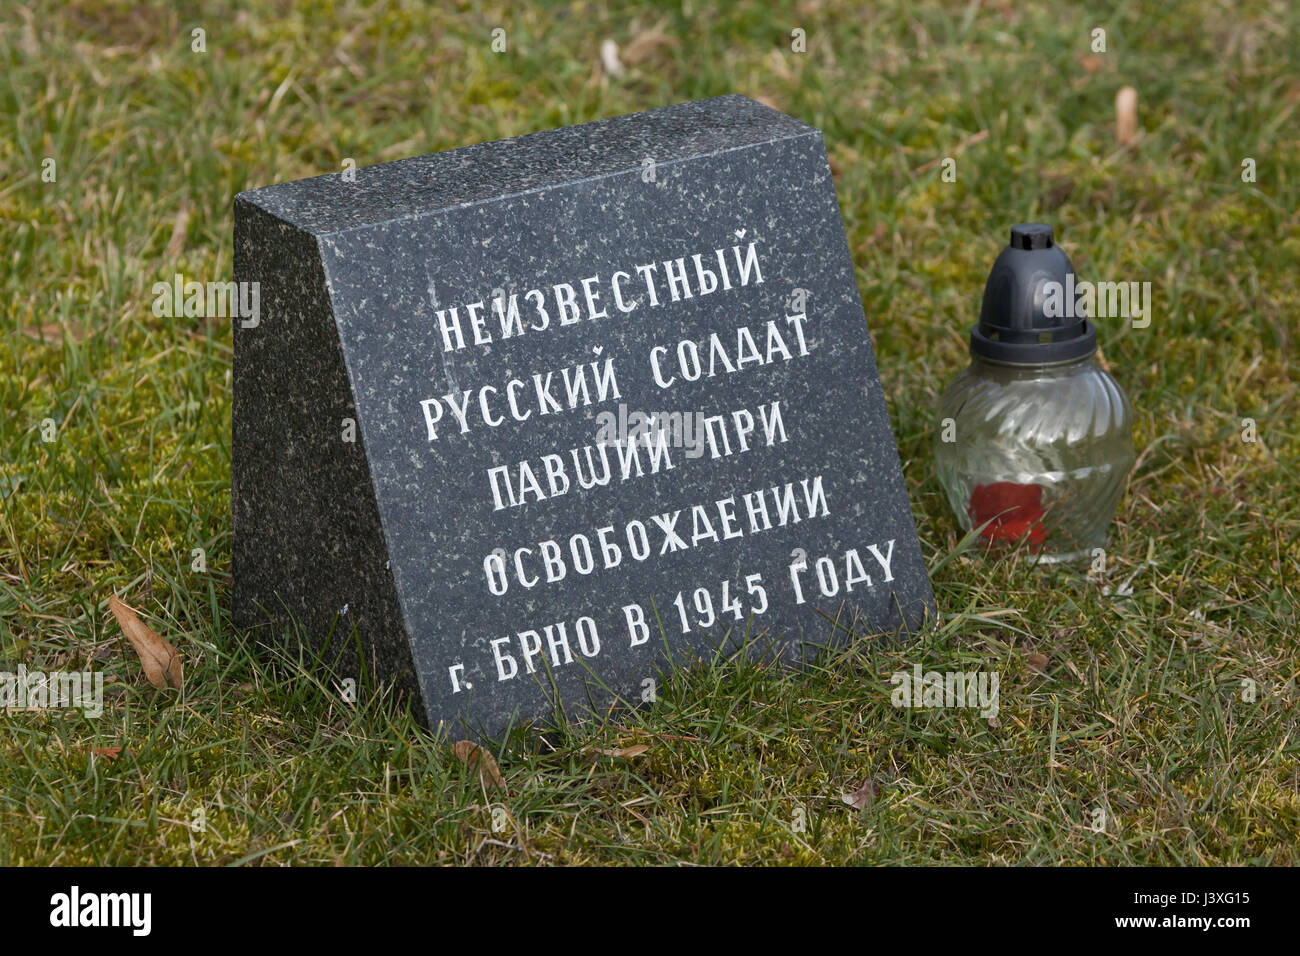 Grave of an unknown Russian soldier fallen in 1945 in the very last days of World War II during the liberation of - Stock Image